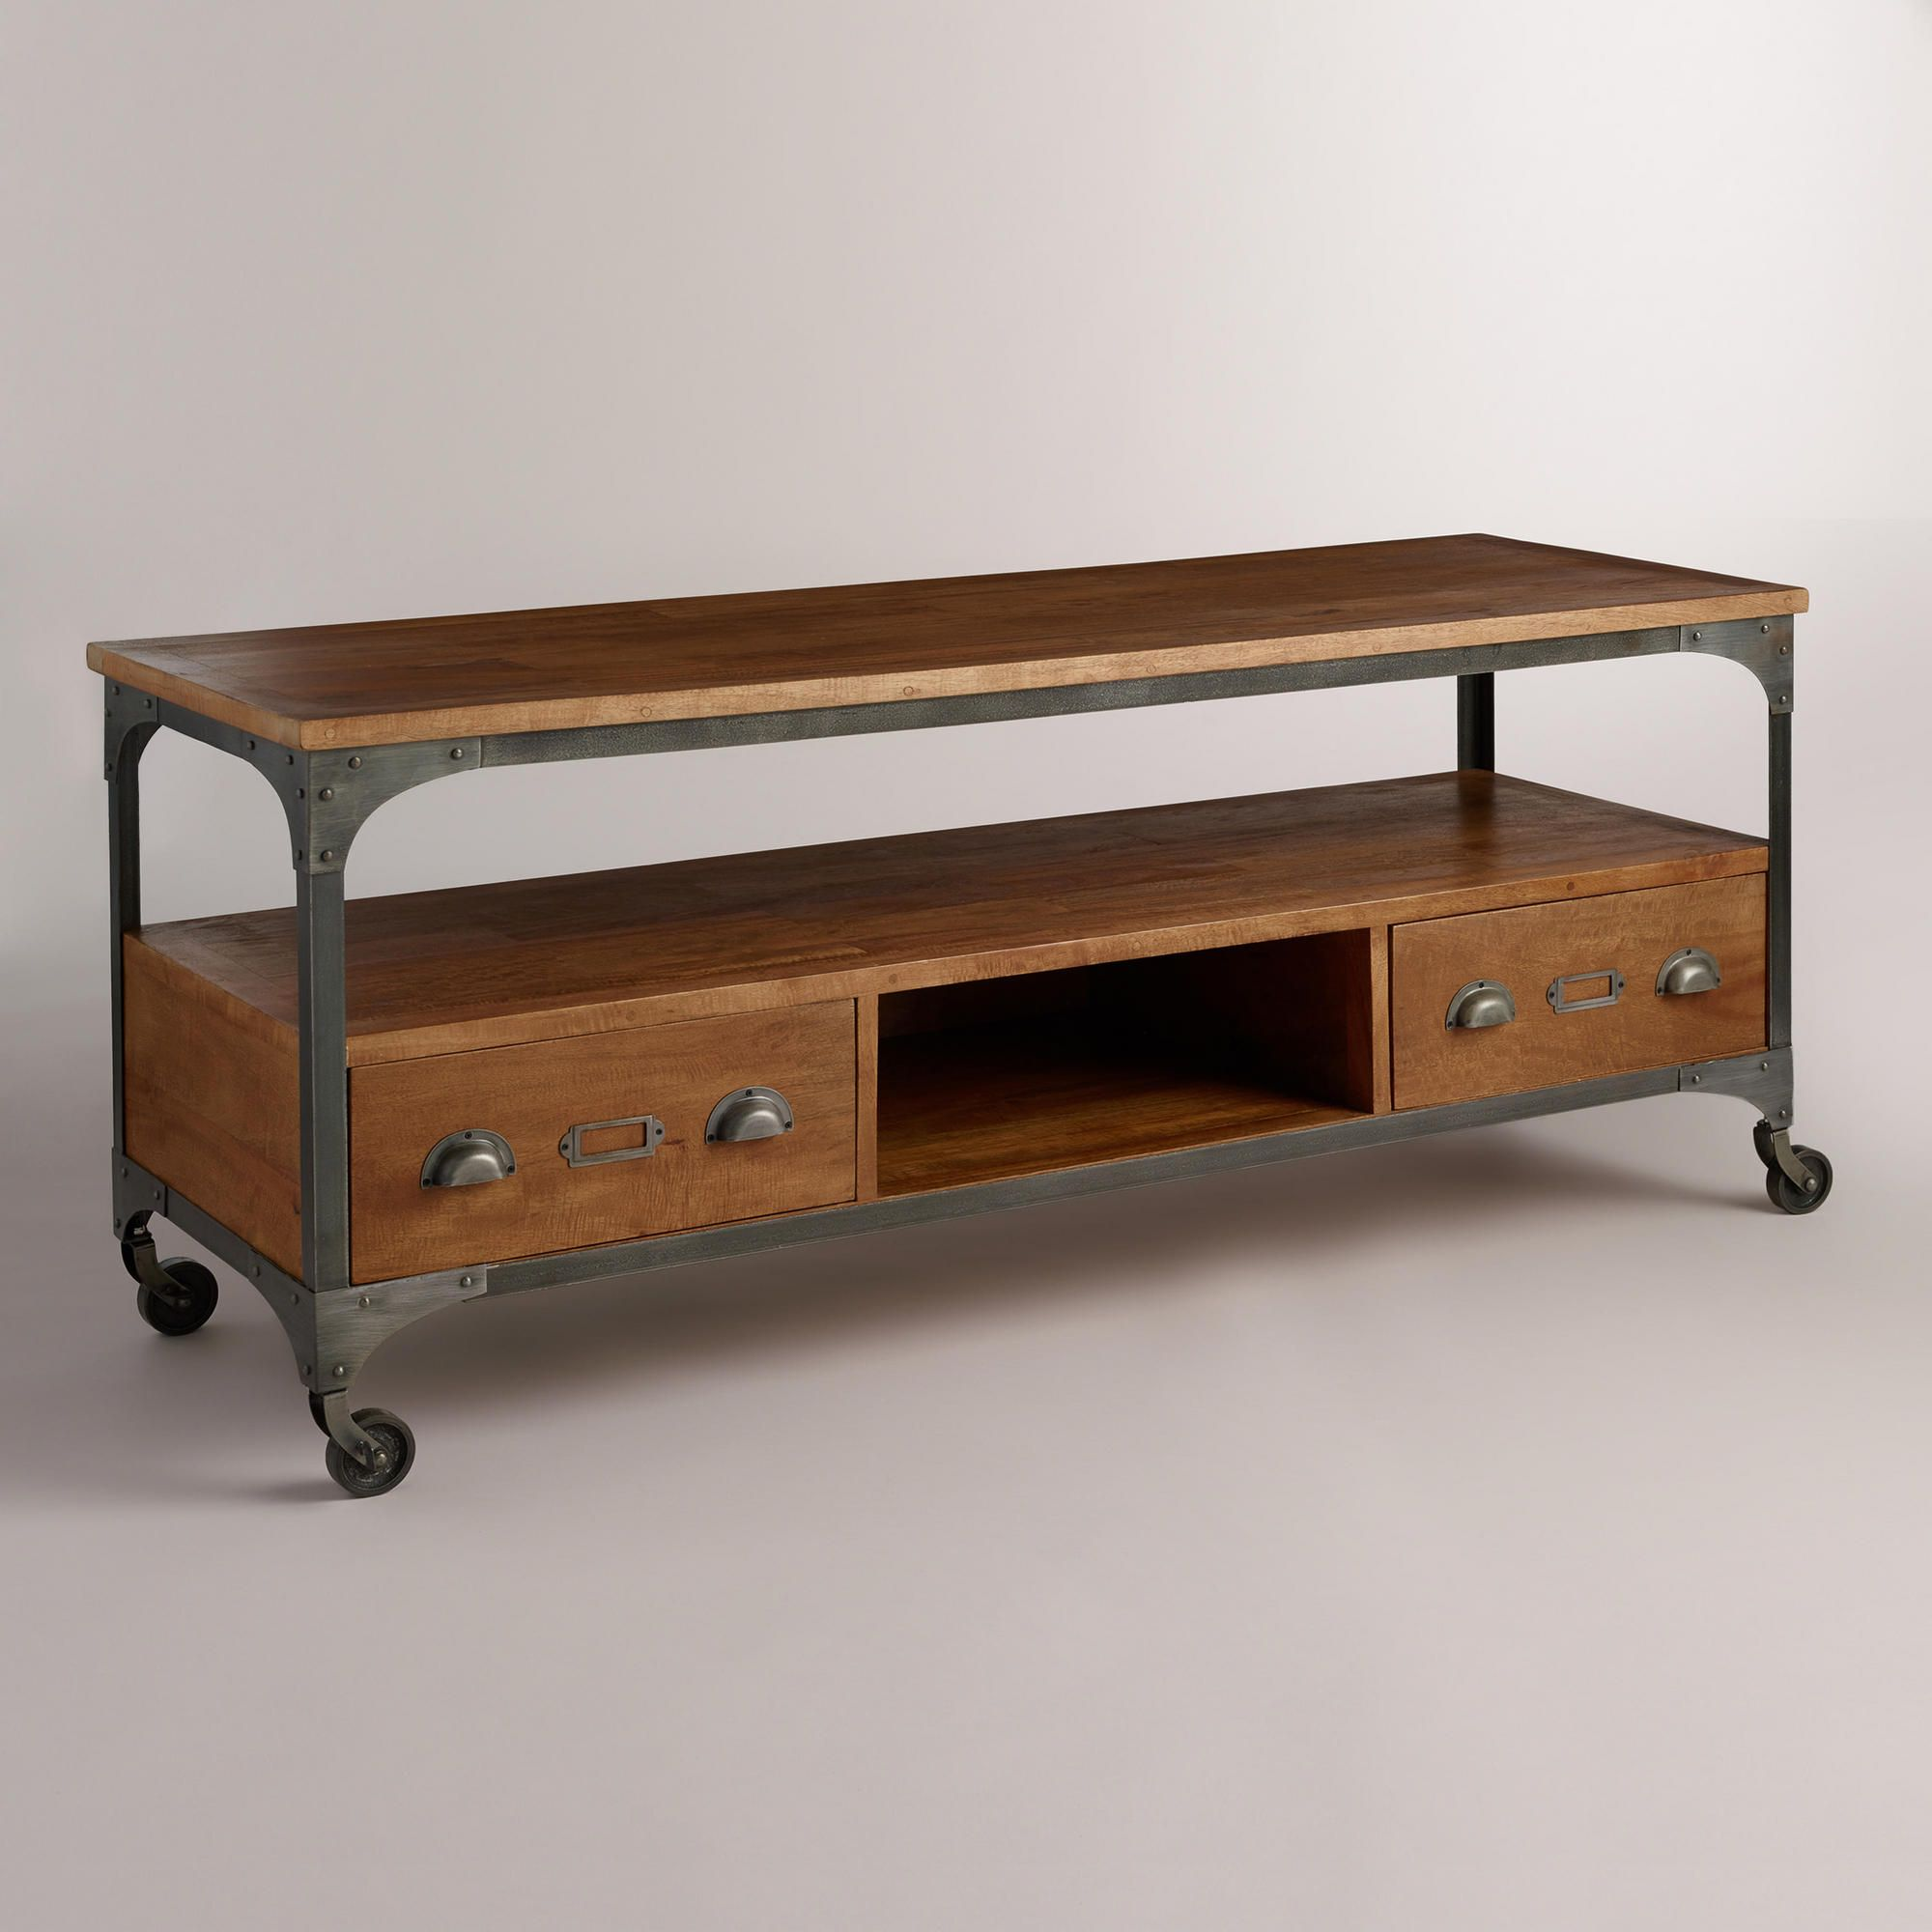 Wood And Metal Aiden Console Table: Home Decor - Aiden Media Stand